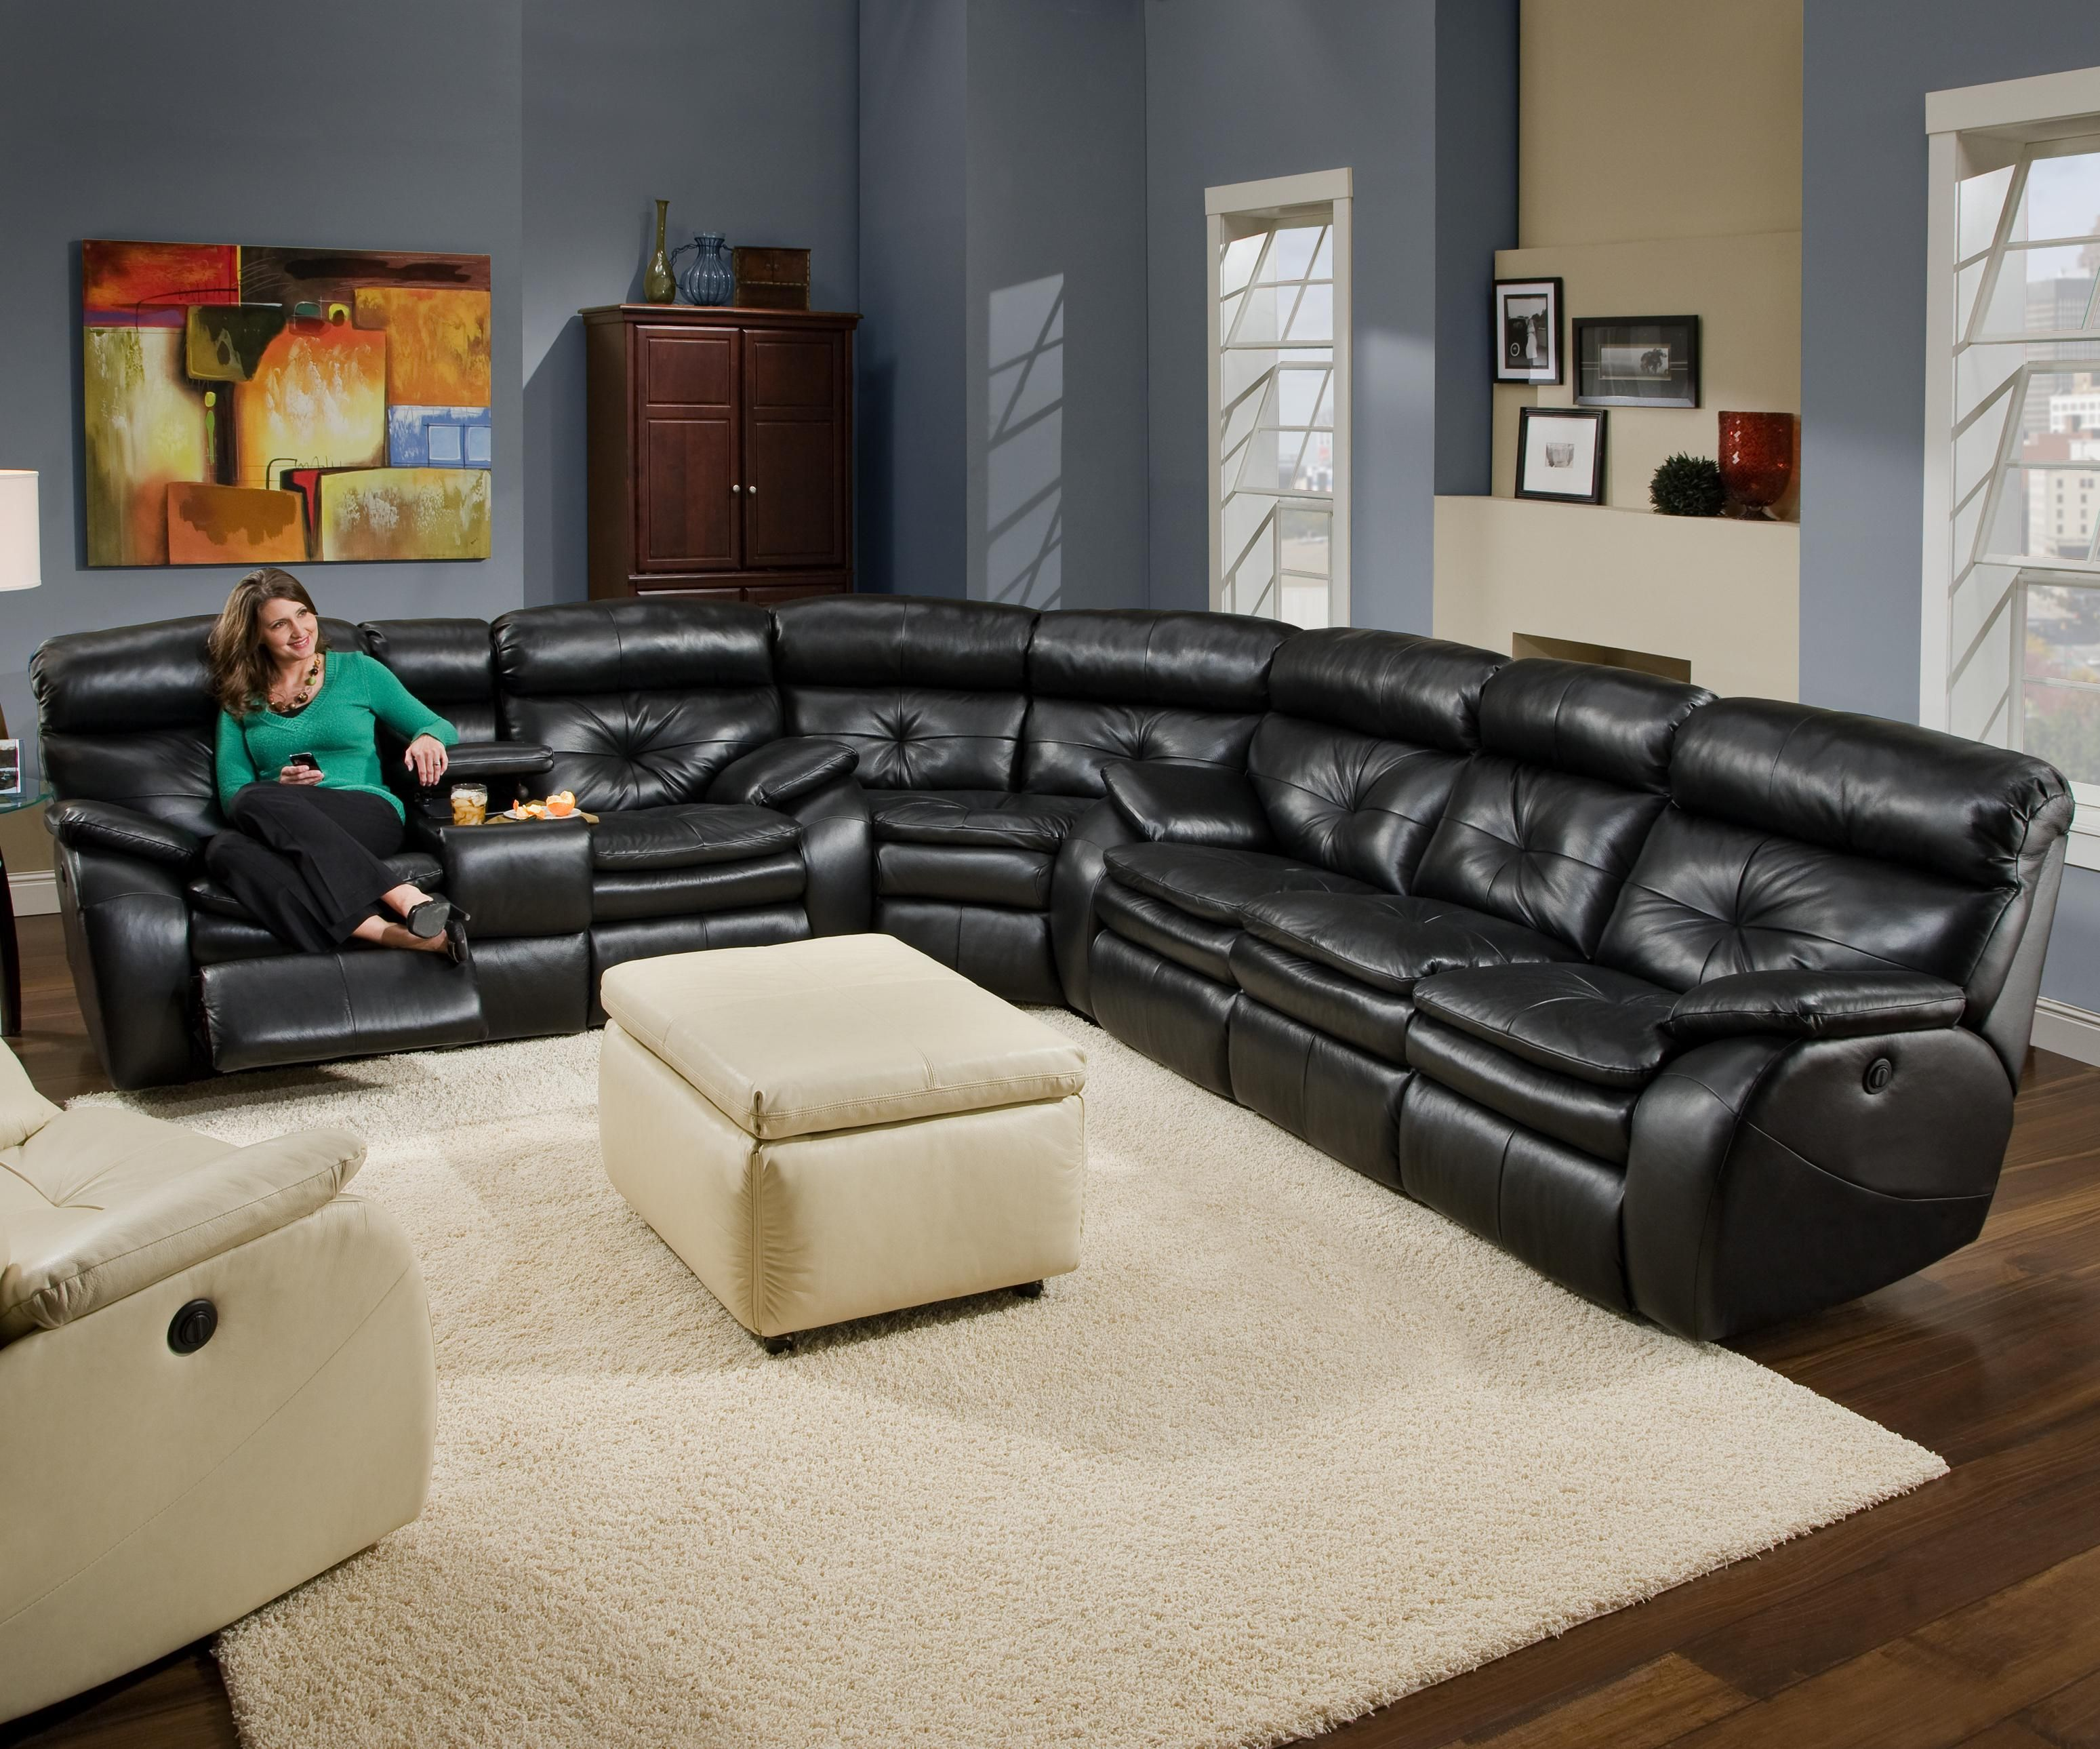 Jitterbug reclining sofa sectional part of the jitterbug collection by southern motion